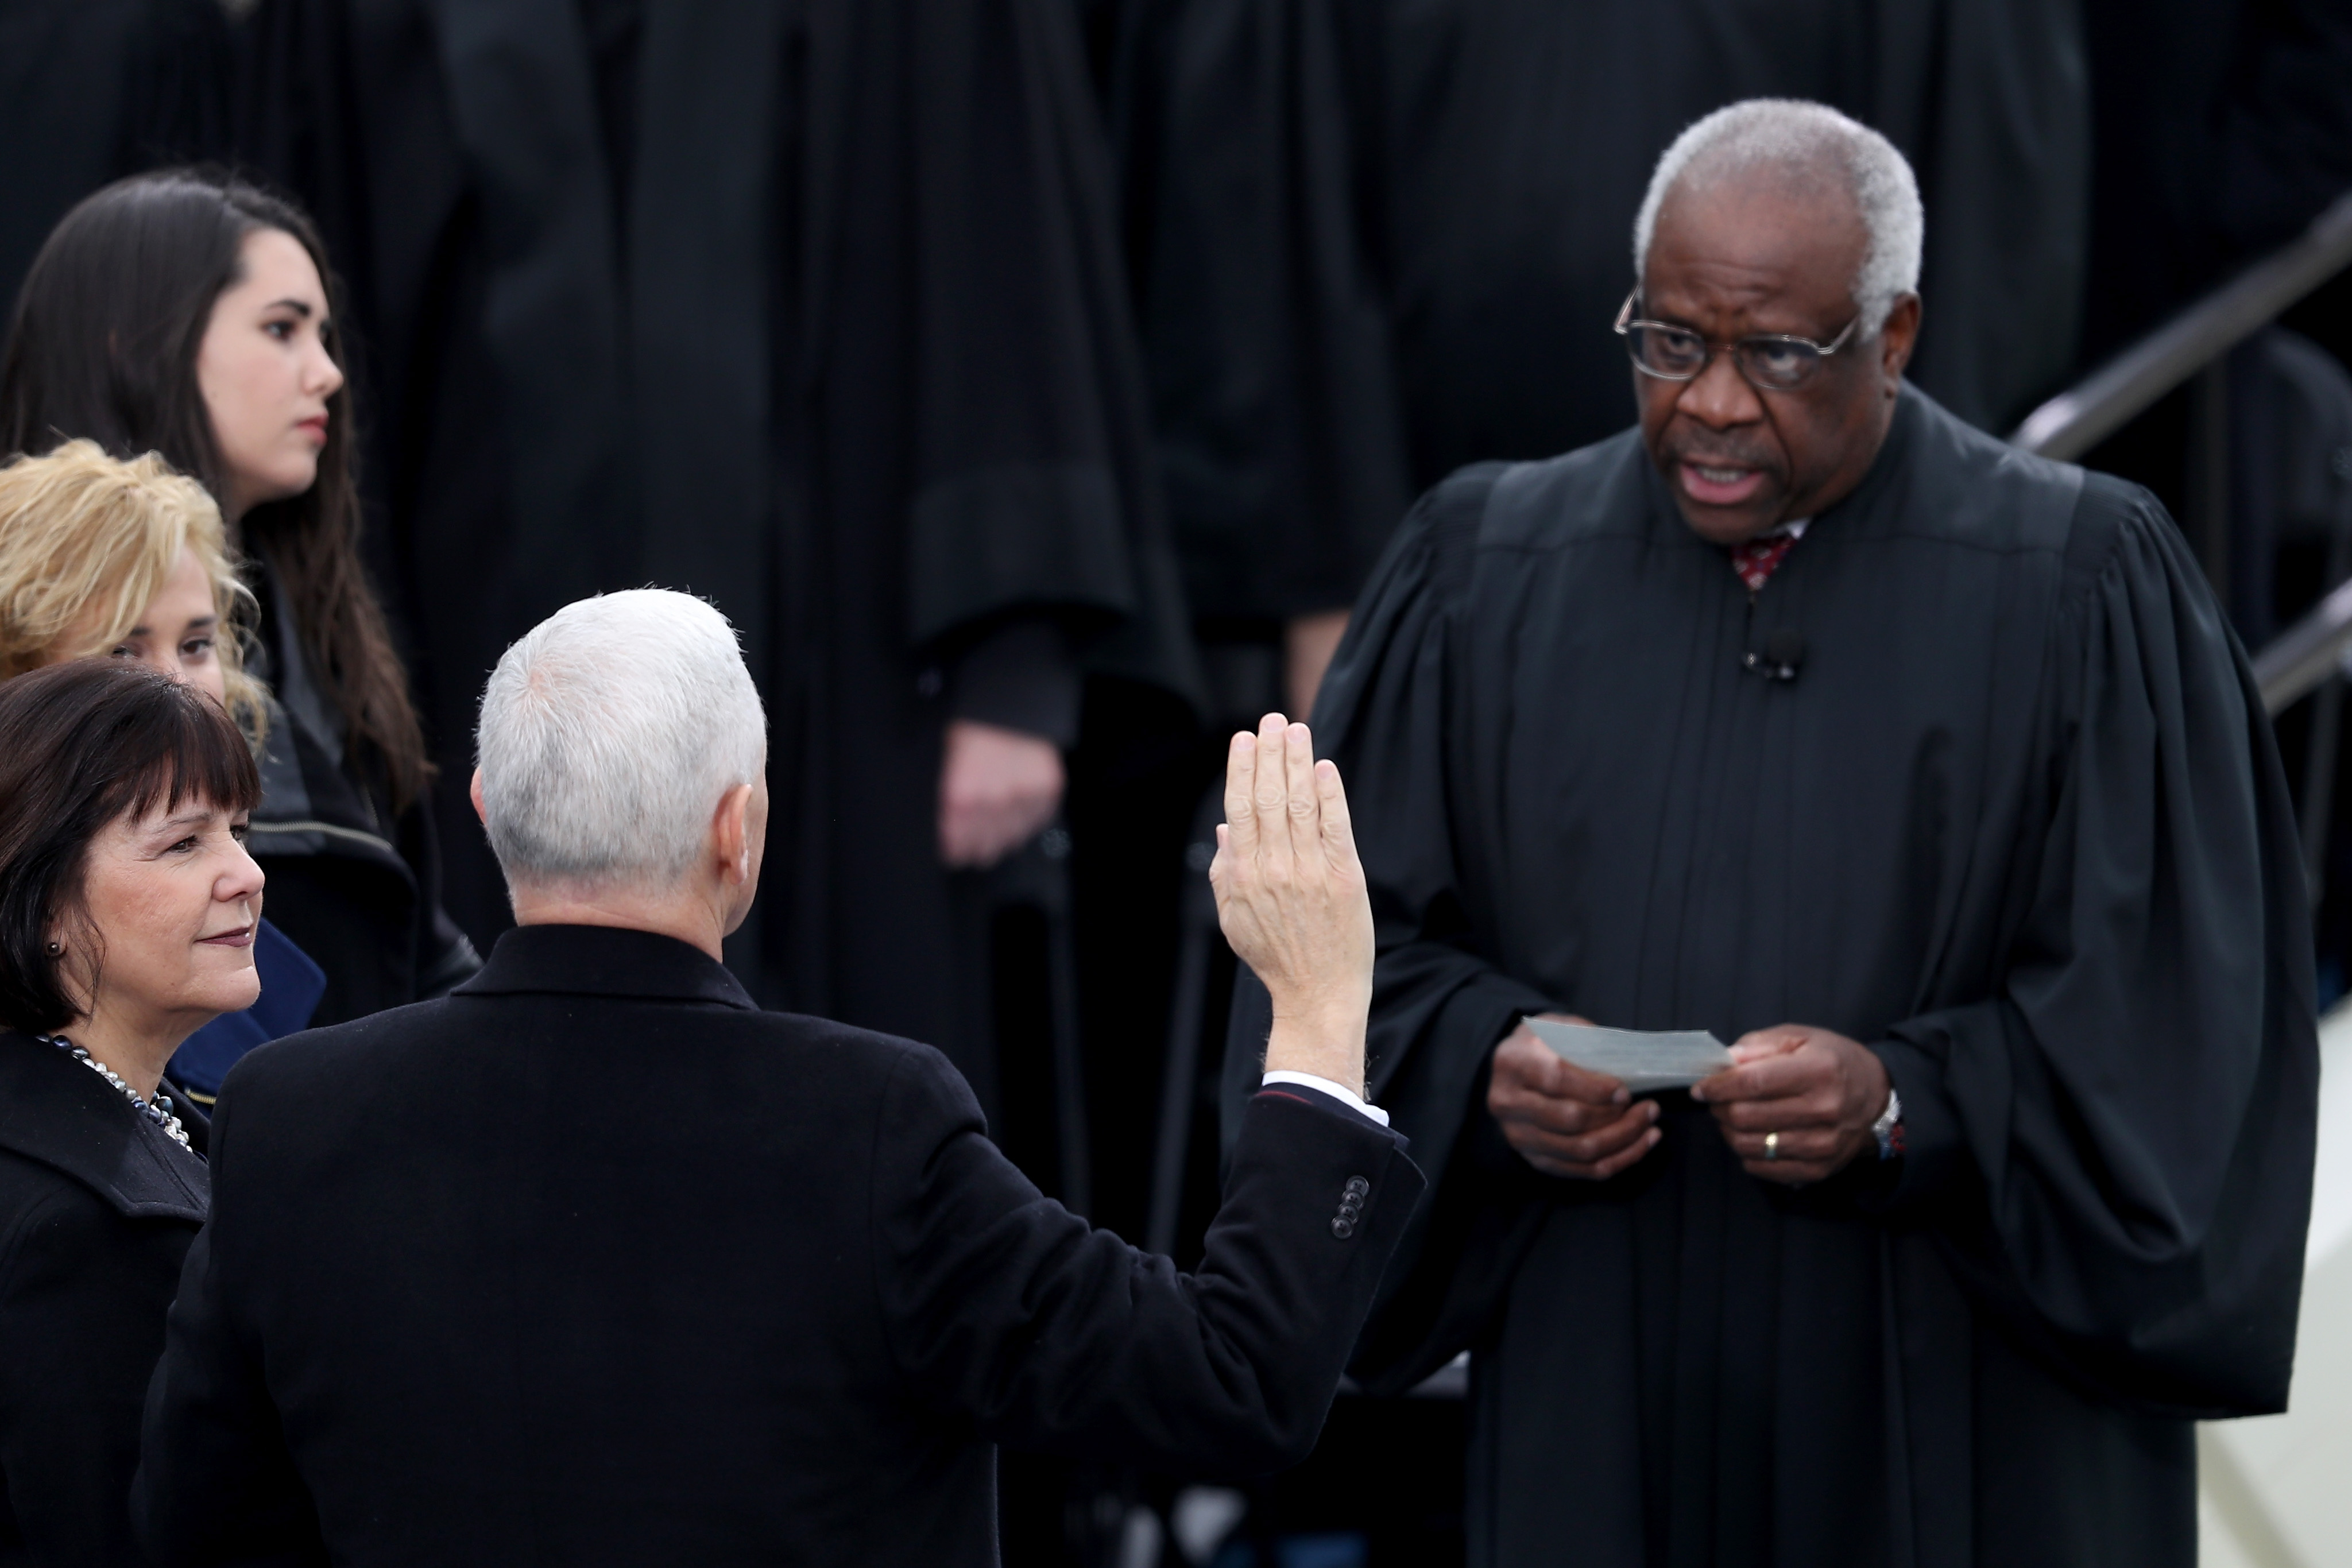 Vice President Mike Pence takes the oath of office from Justice Clarence Thomas. (Joe Raedle/Getty Images)